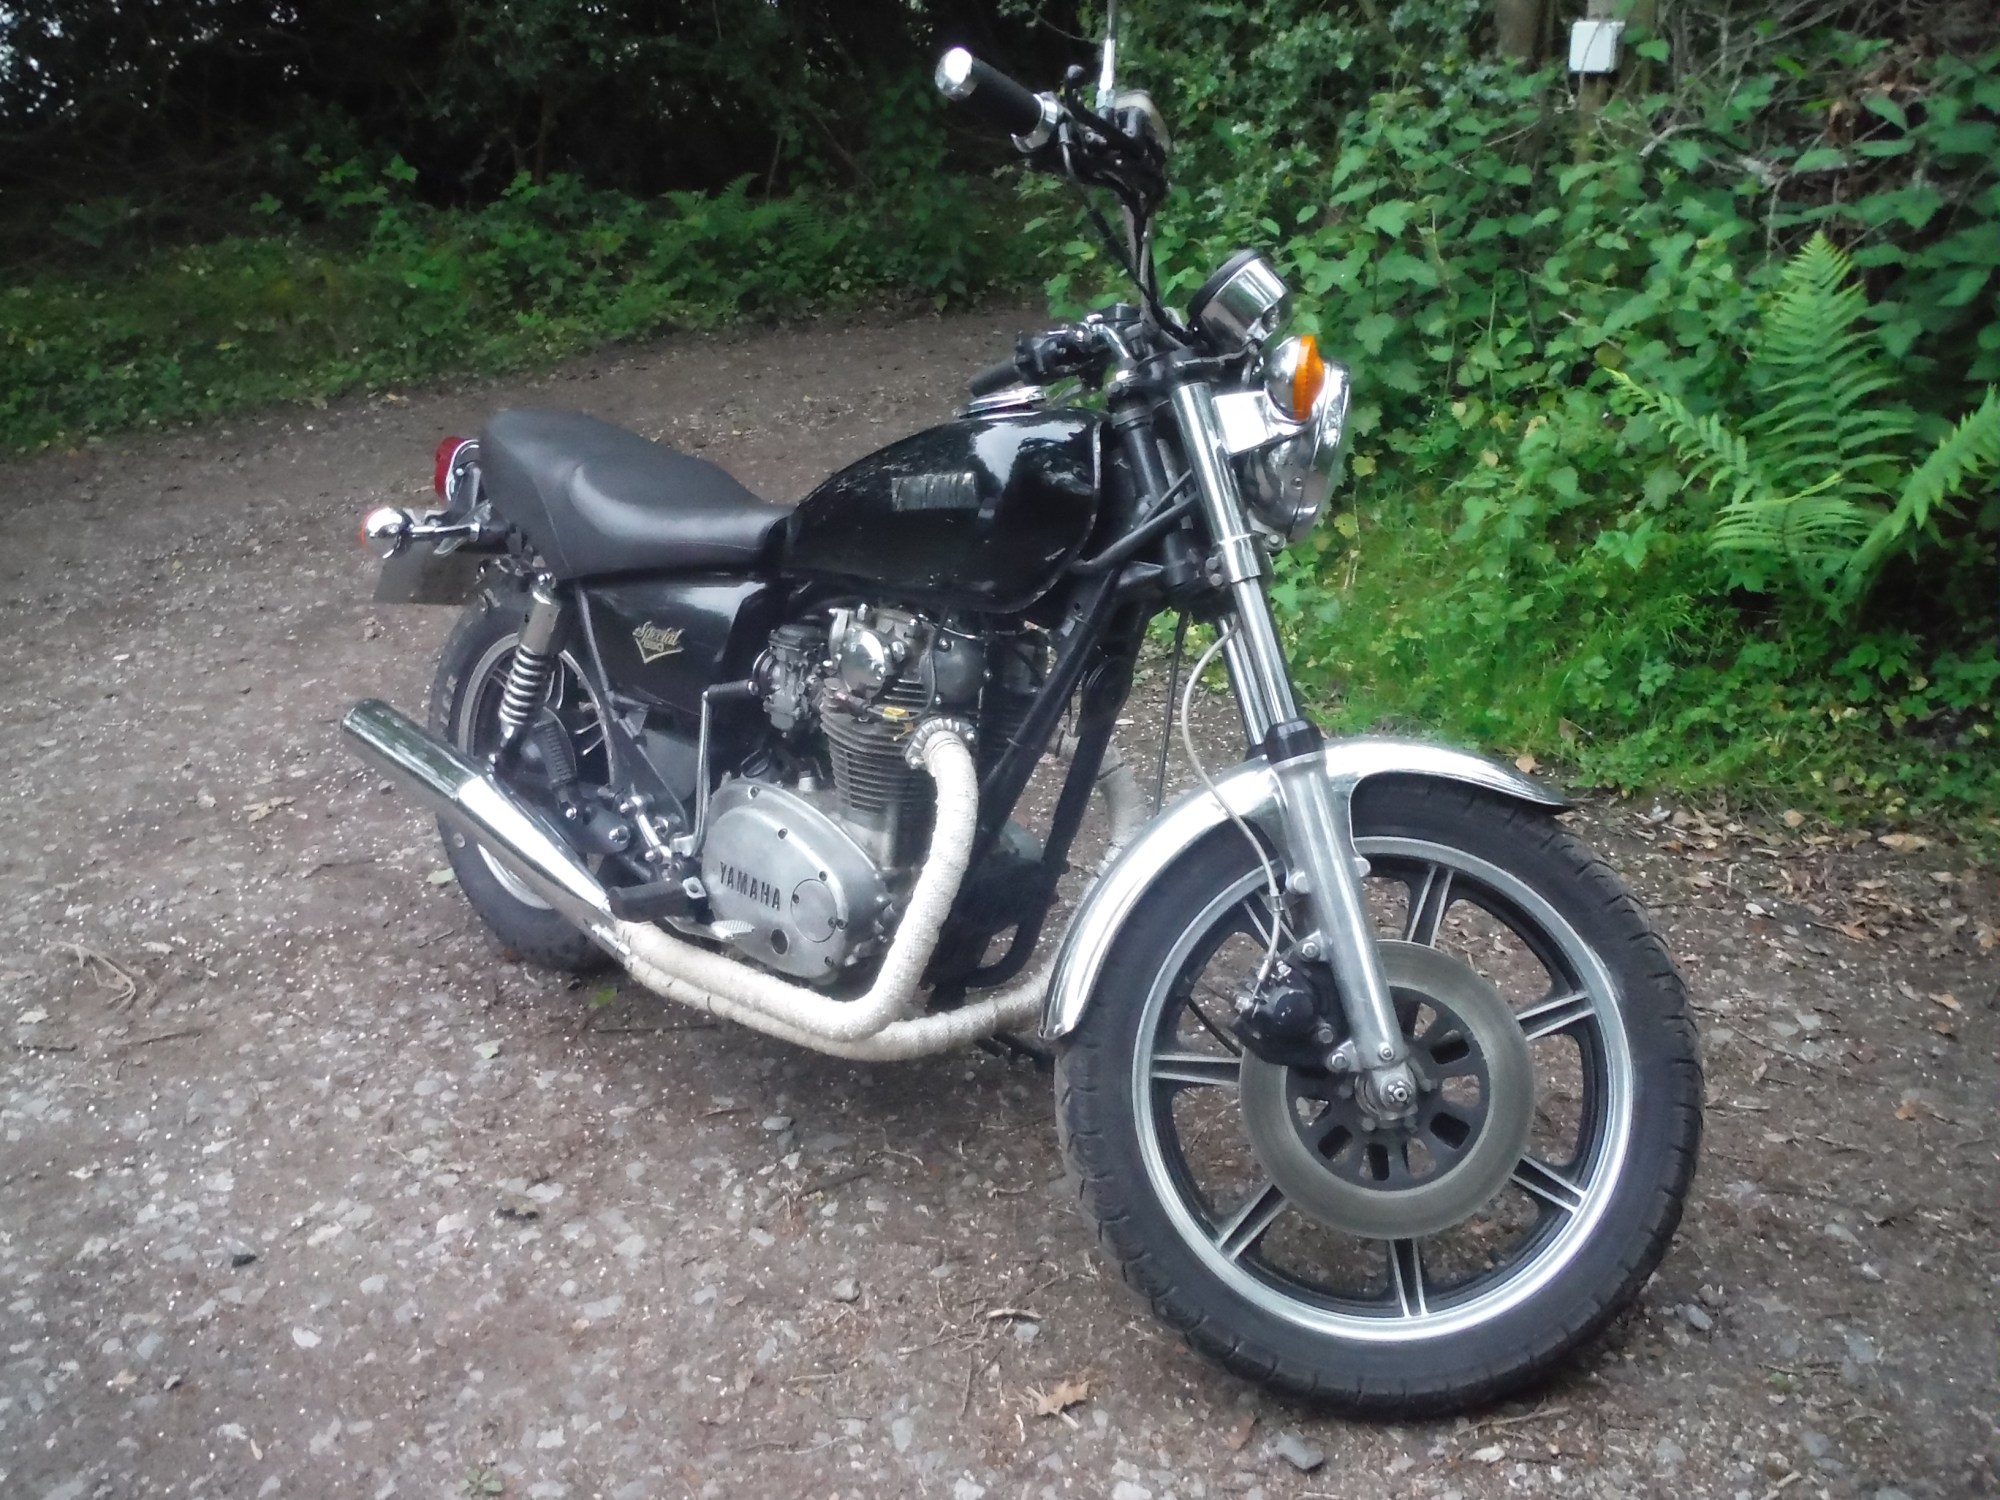 hight resolution of my xs650 special with rebuilt engine and a few modifications the original carbs were shot and butchered with wrong screws which were cross threaded